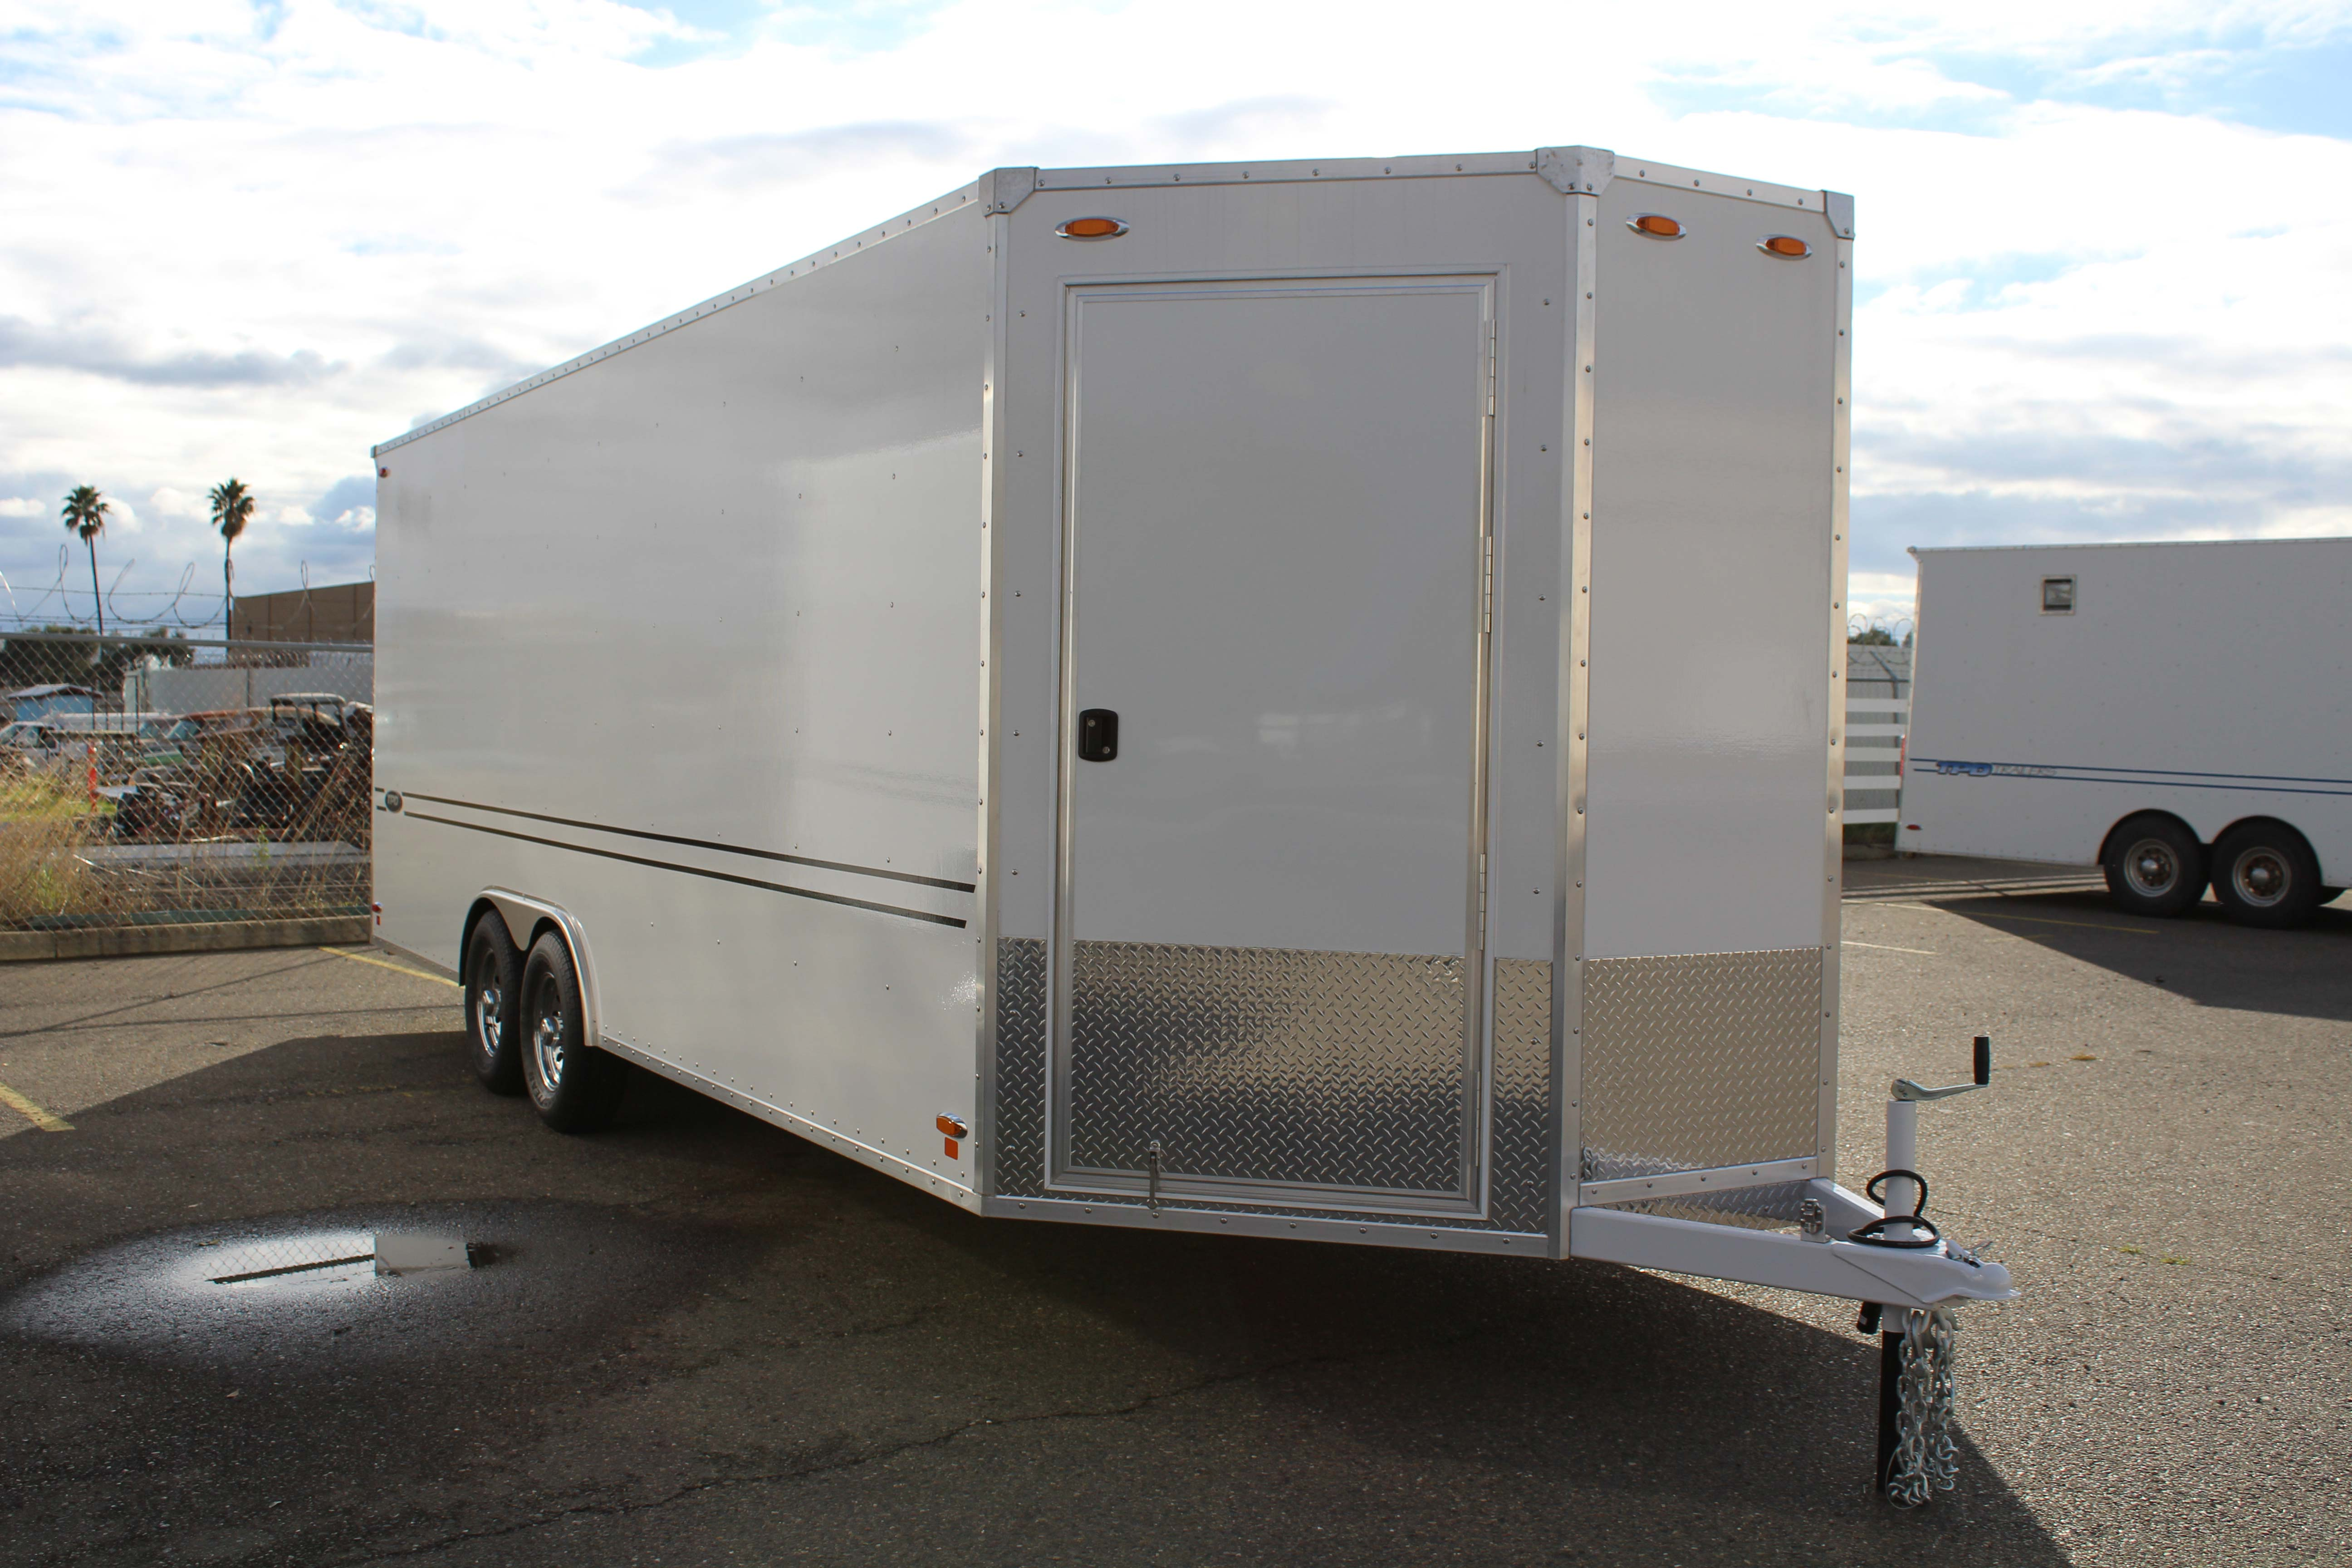 New 27 Foot Quot V Nose Quot Tpd Trailer Tpd Trailers